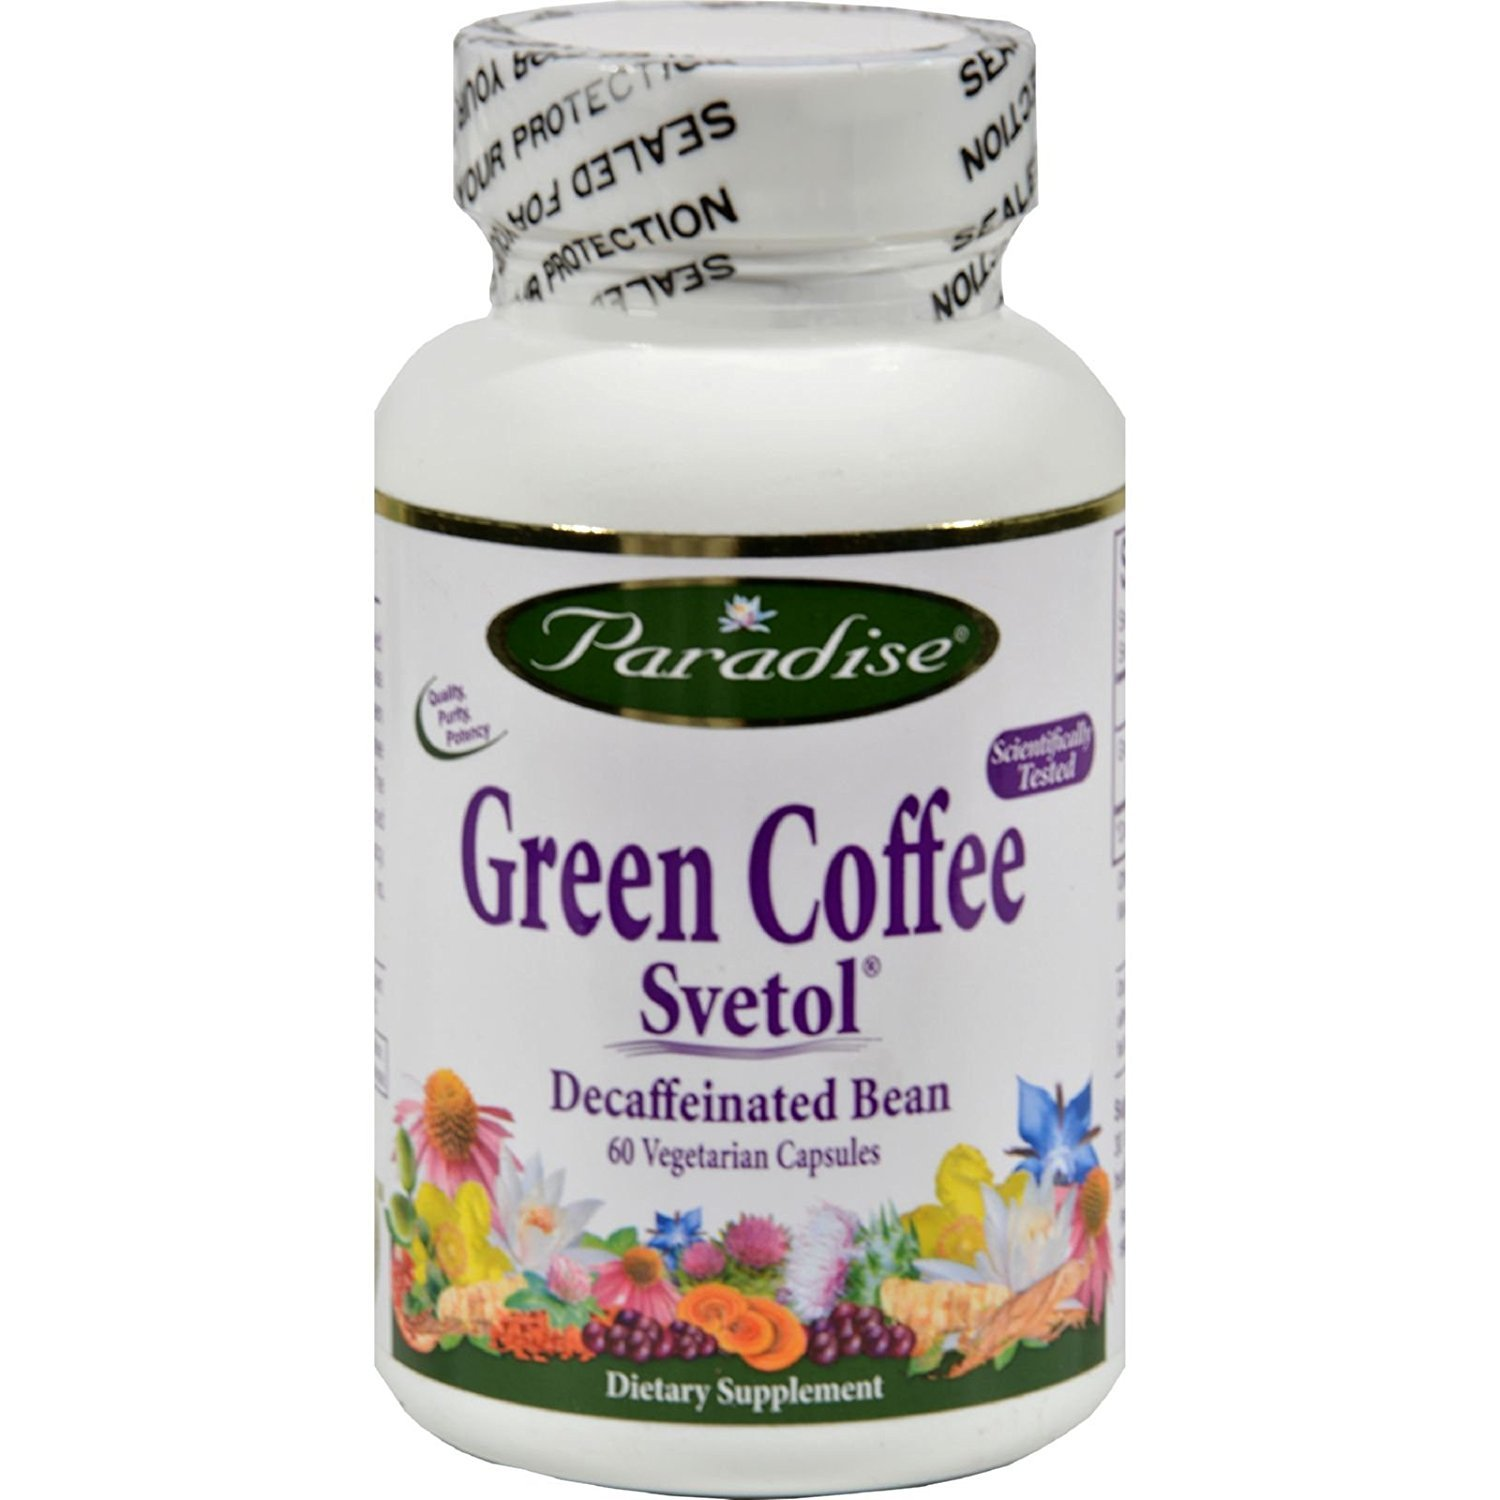 Paradise Herbs Green Coffee Svetol - 60 Vcaps (Pack of 2)